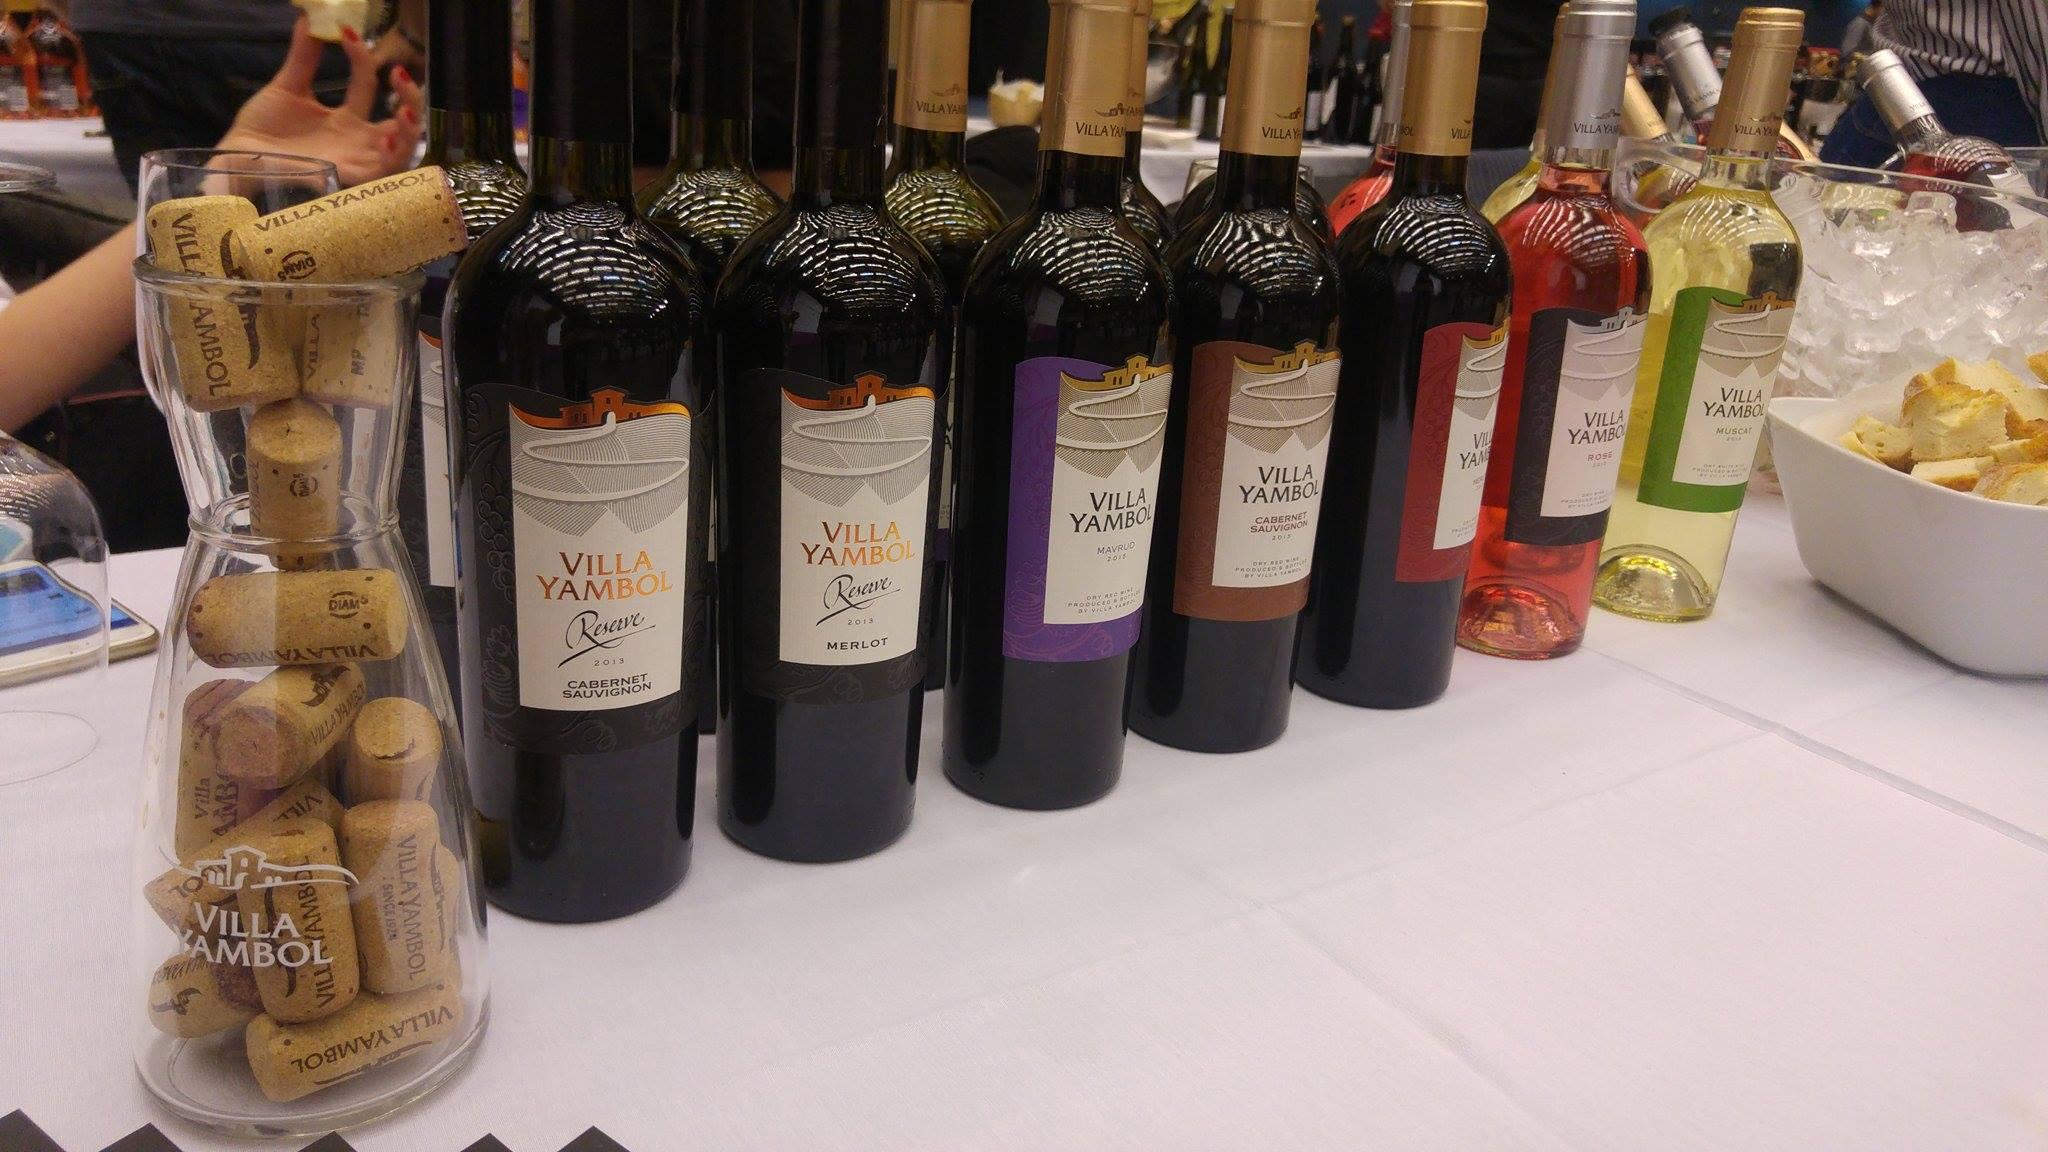 Villa Yambol took part in DiVino Taste 2016